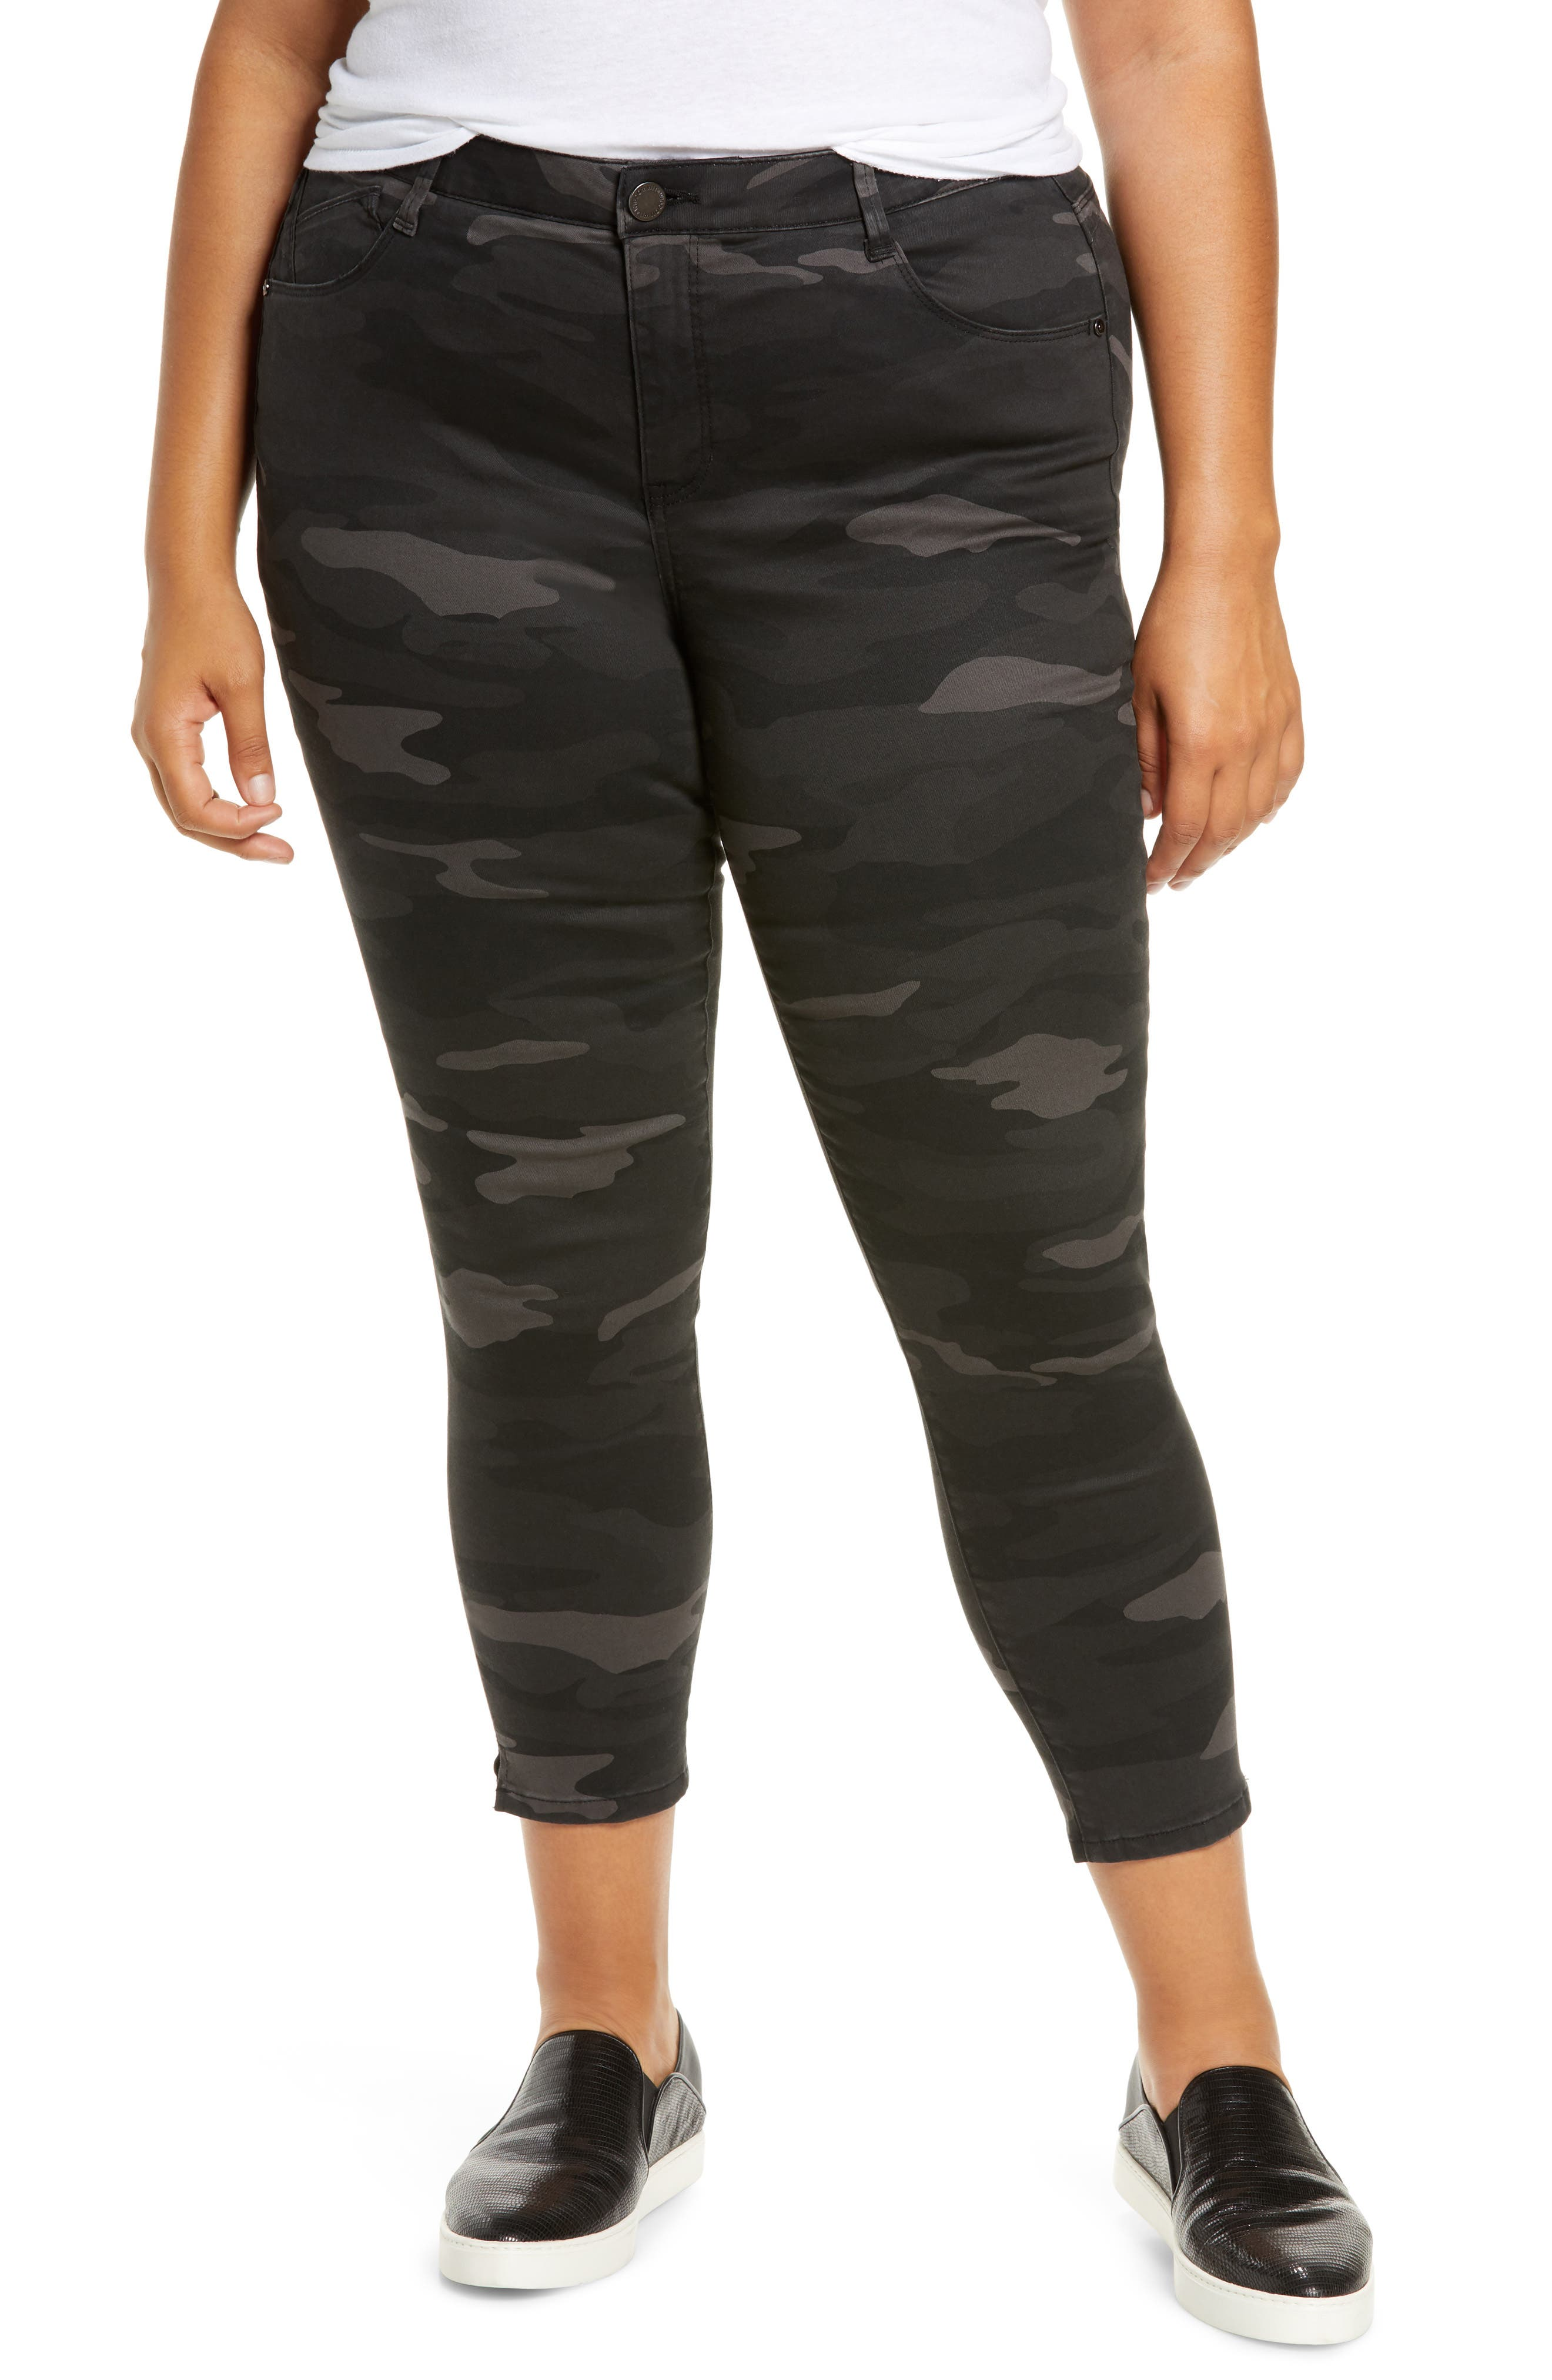 Camo-print skinny pants are cut to flatter with a high waist and Ab-solution power-mesh panels to shape, smooth and lift in all the right places. Style Name: Wit & Wisdom Ab-Solution Camo High Waist Ankle Skinny Pants (Plus Size) (Nordstrom Exclusive). Style Number: 5785709. Available in stores.